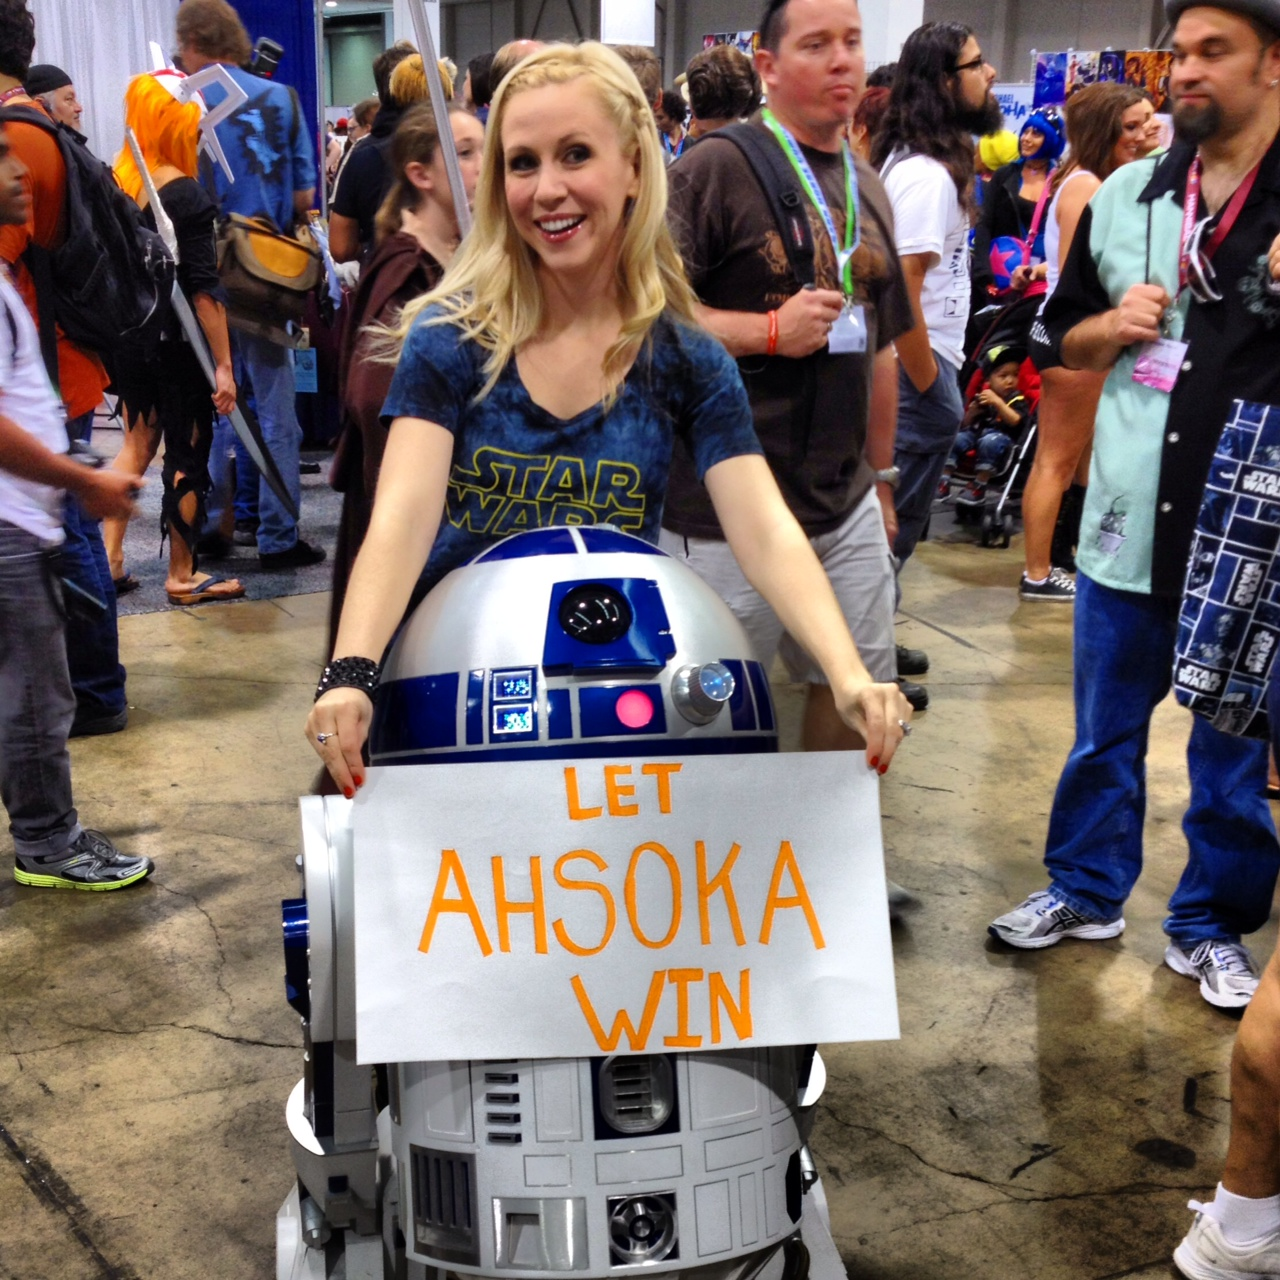 R2-D2 says to Let Ahsoka Win!